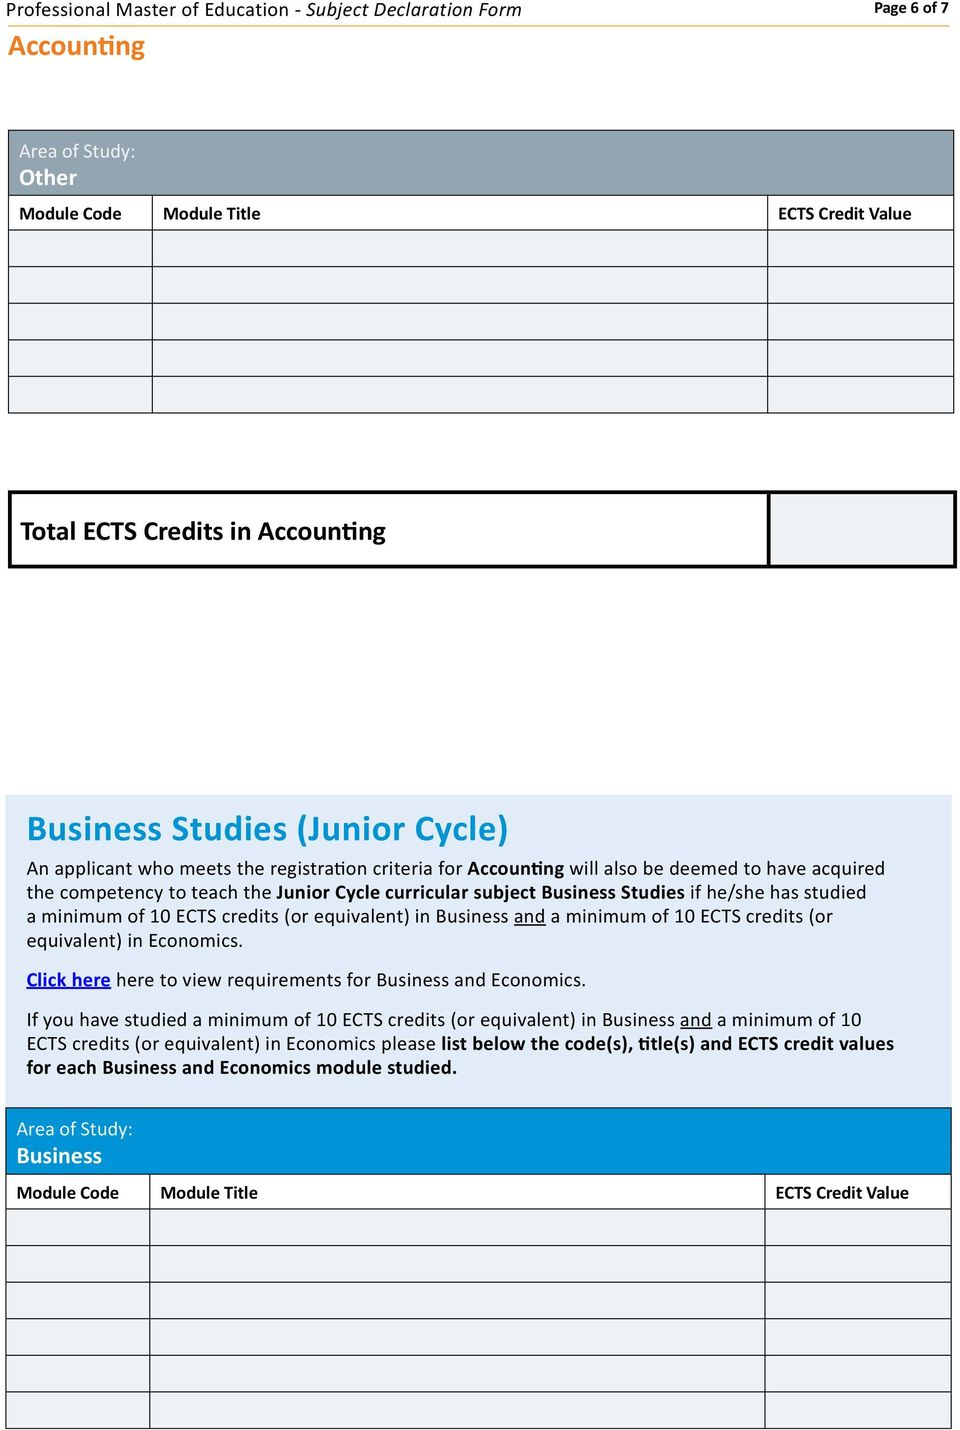 ECTS credits (or equivalent) in Economics. Click here here to view requirements for Business and Economics.